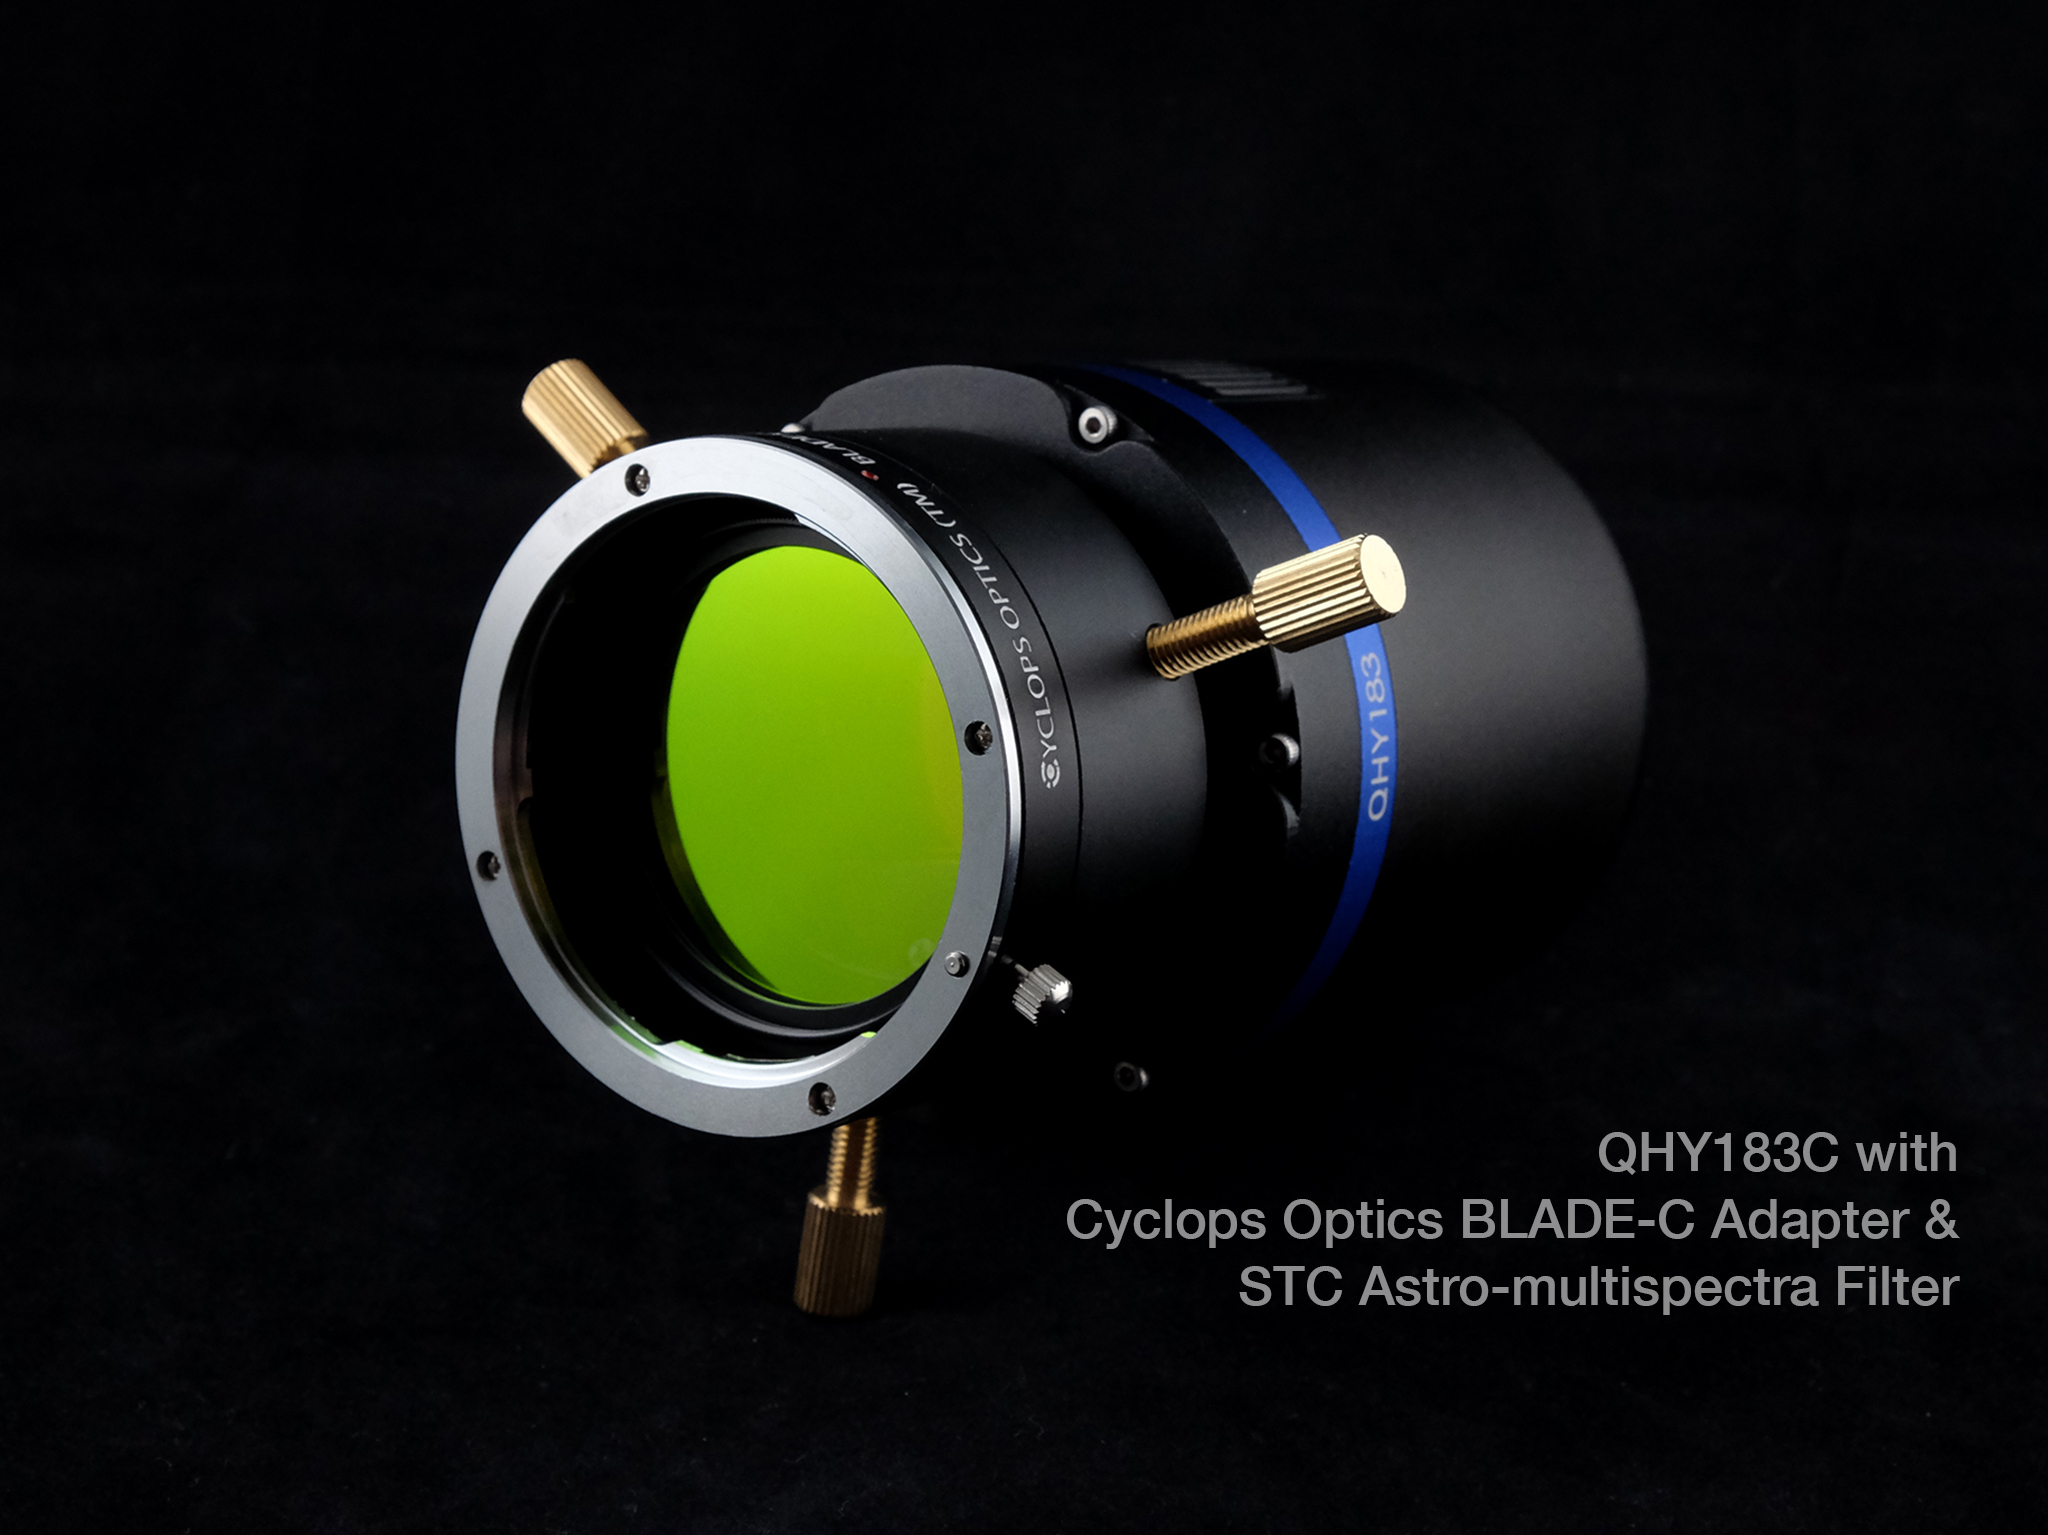 qhy183c-blade-c-adapter-with-stc-astro-multispectra-caption.jpg